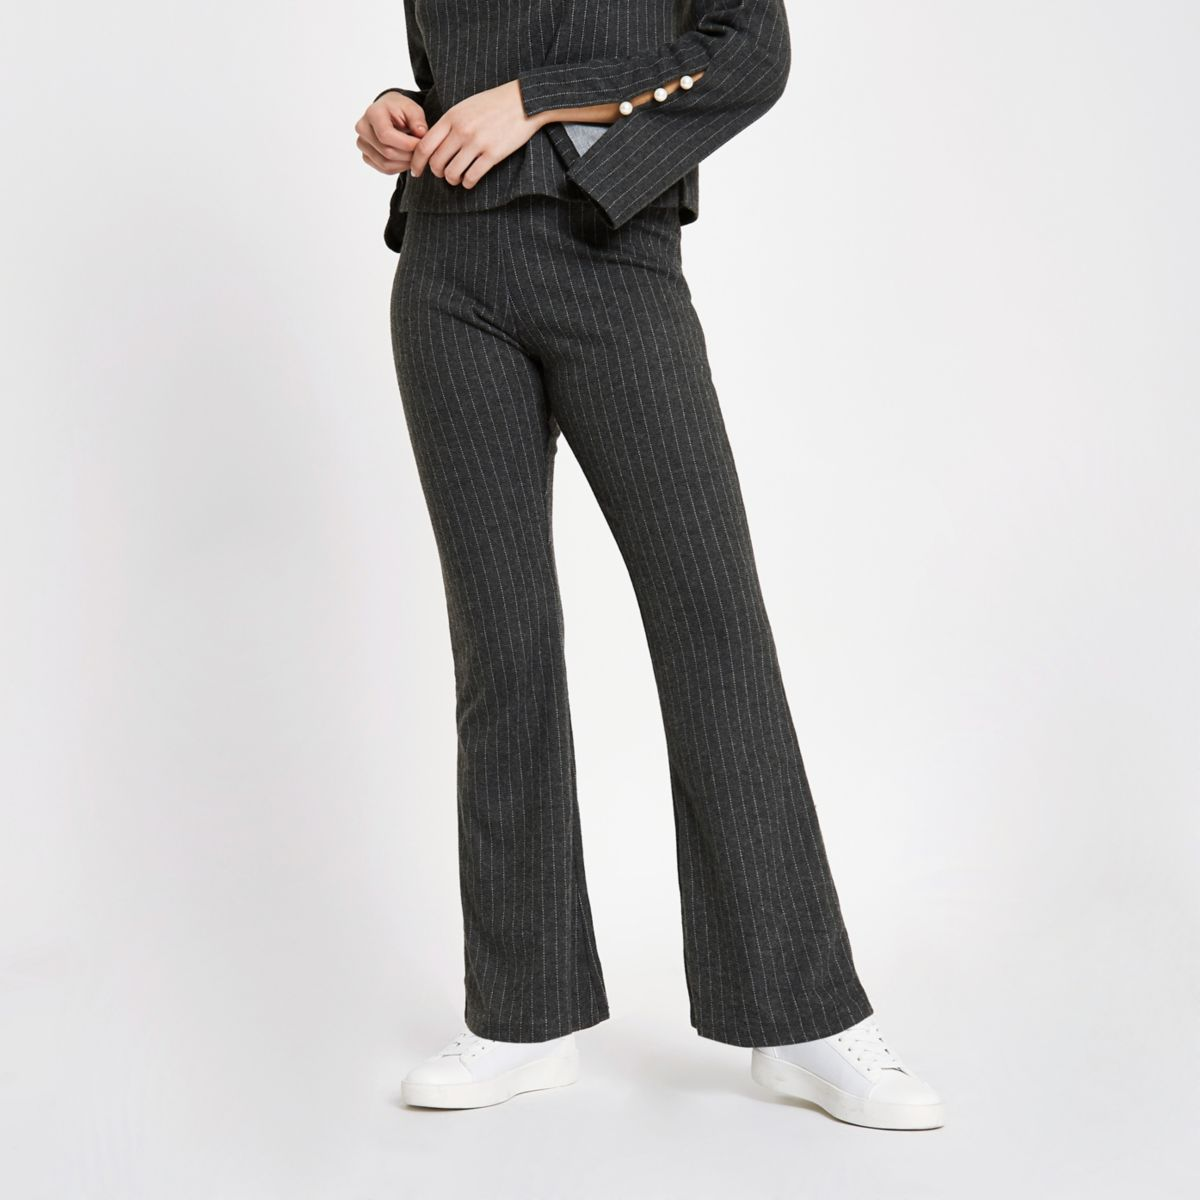 Grey pinstripe knit pants